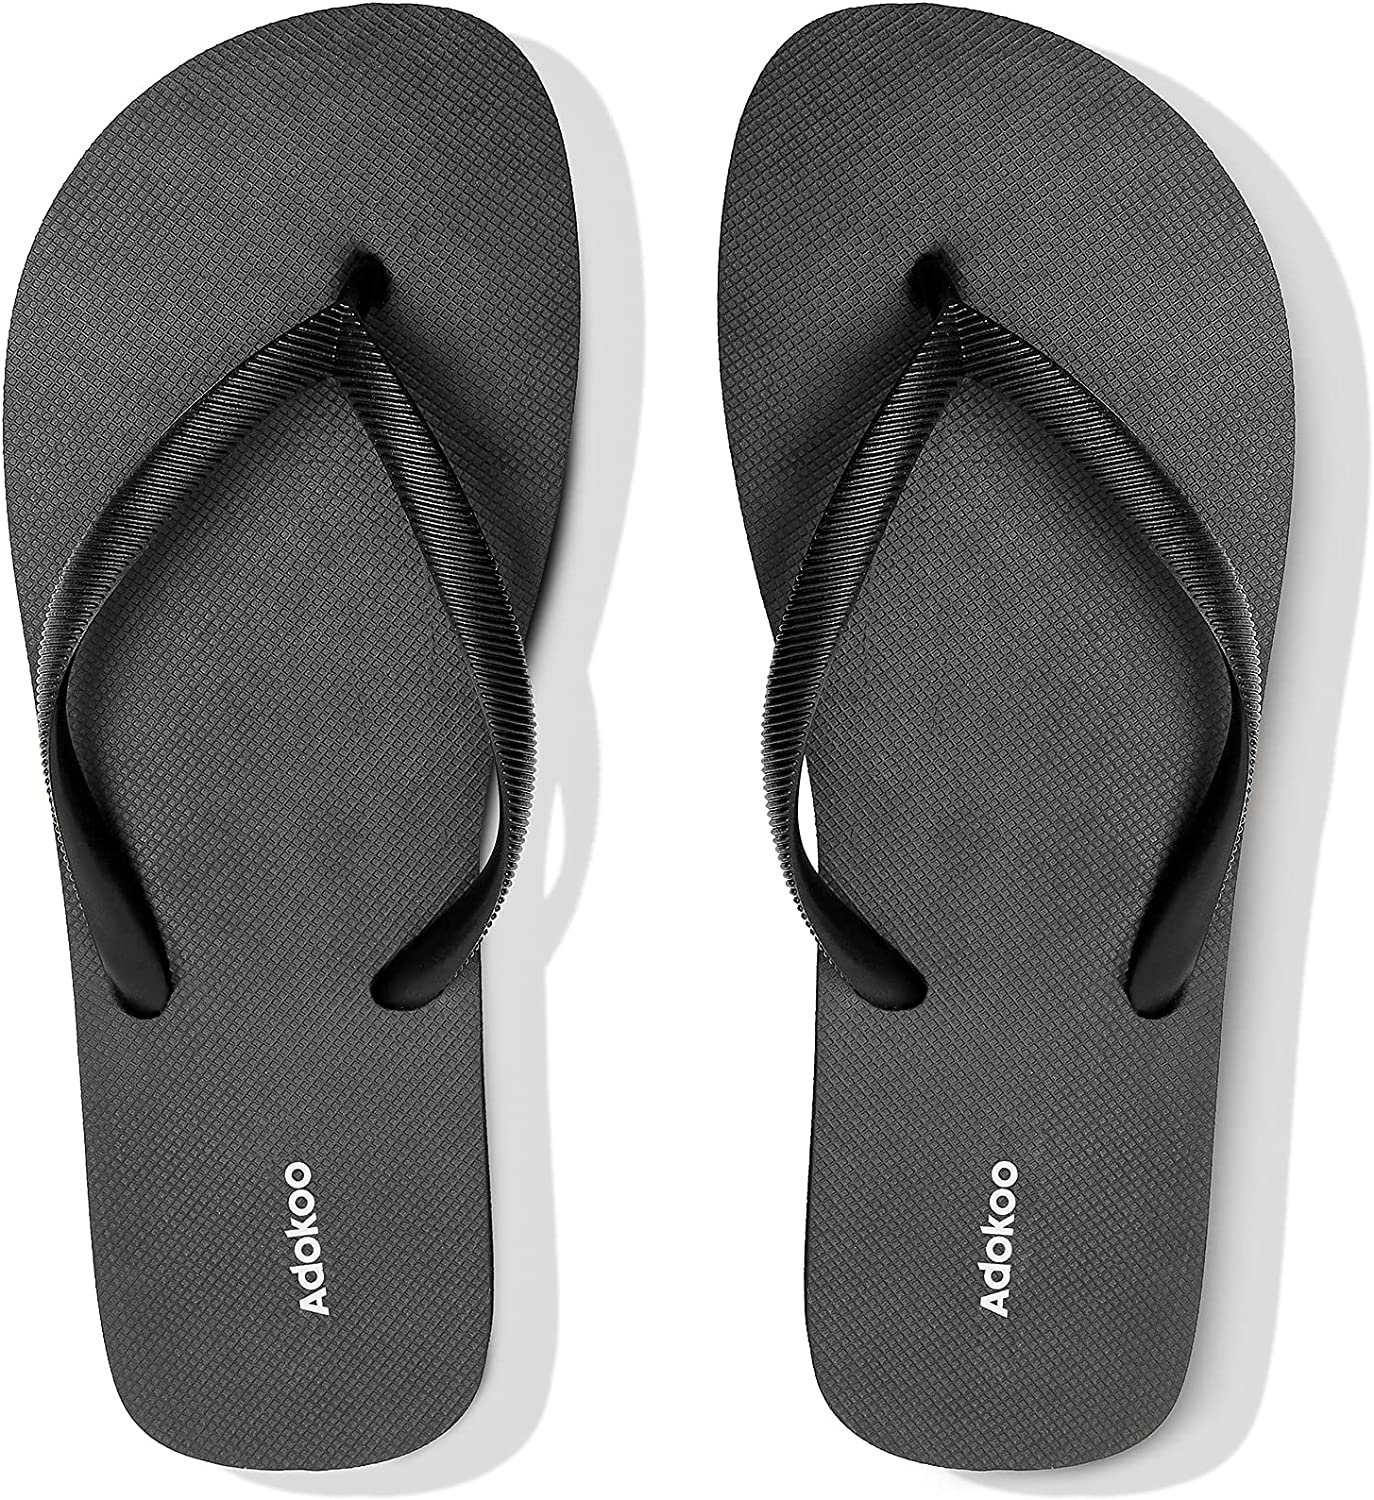 Womens Max 70% OFF At the price of surprise Flip Flops Black Summer Thong Beach St Sandals